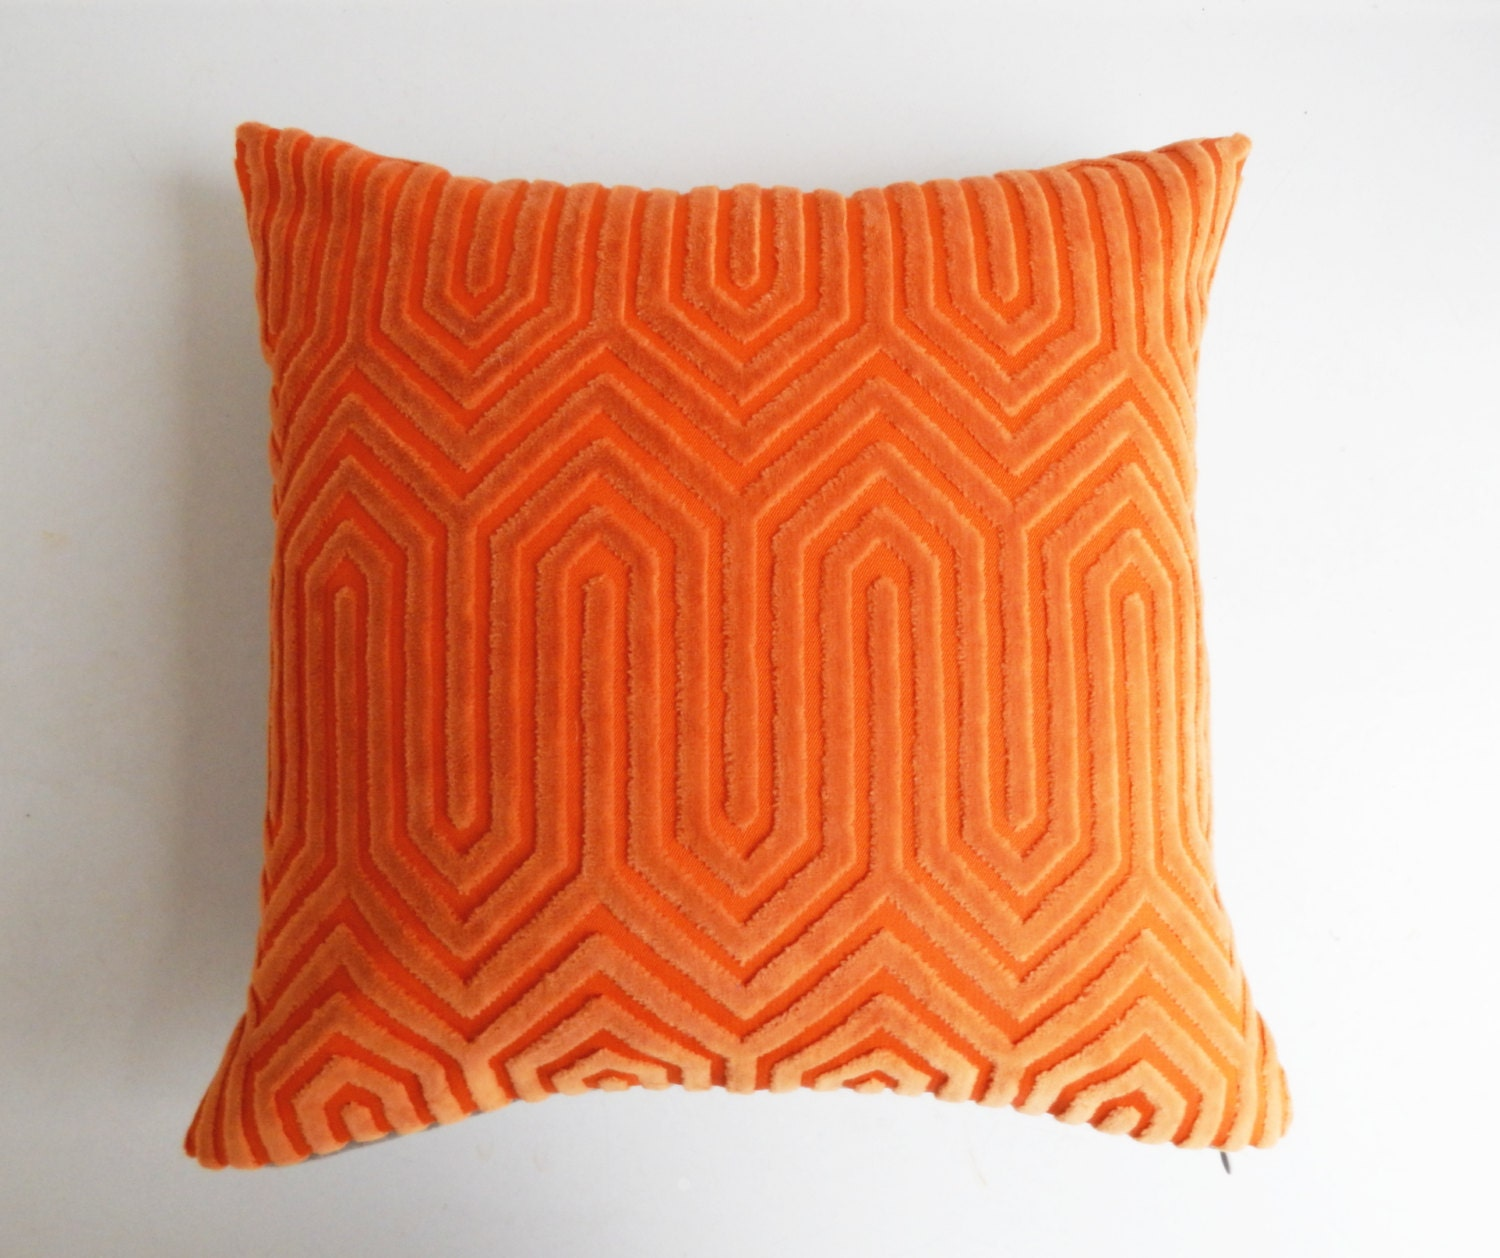 Modern Orange Pillow : Orange Pillow Cover Vintage Modern Geometric Cut Velvet